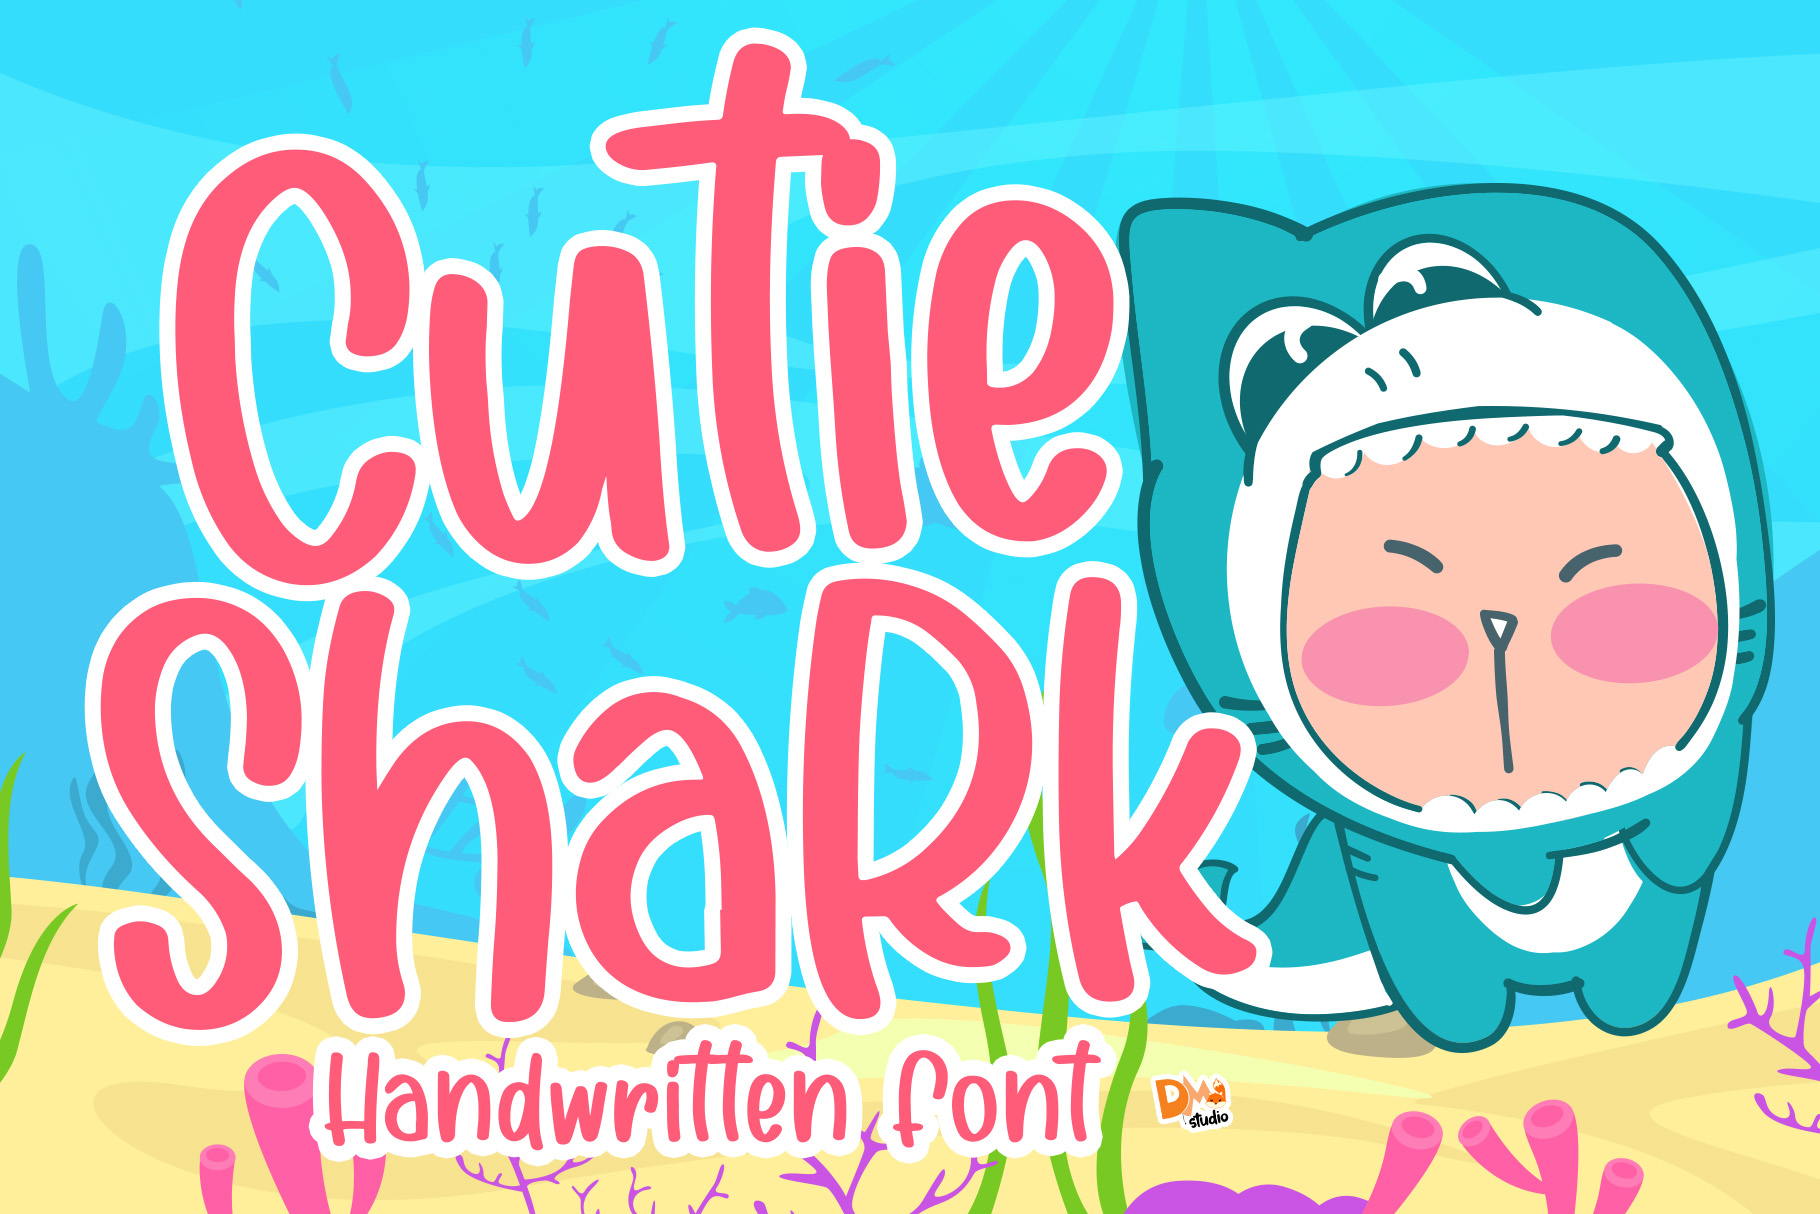 Download Free Cutie Shark Font By Dmletter31 Creative Fabrica for Cricut Explore, Silhouette and other cutting machines.